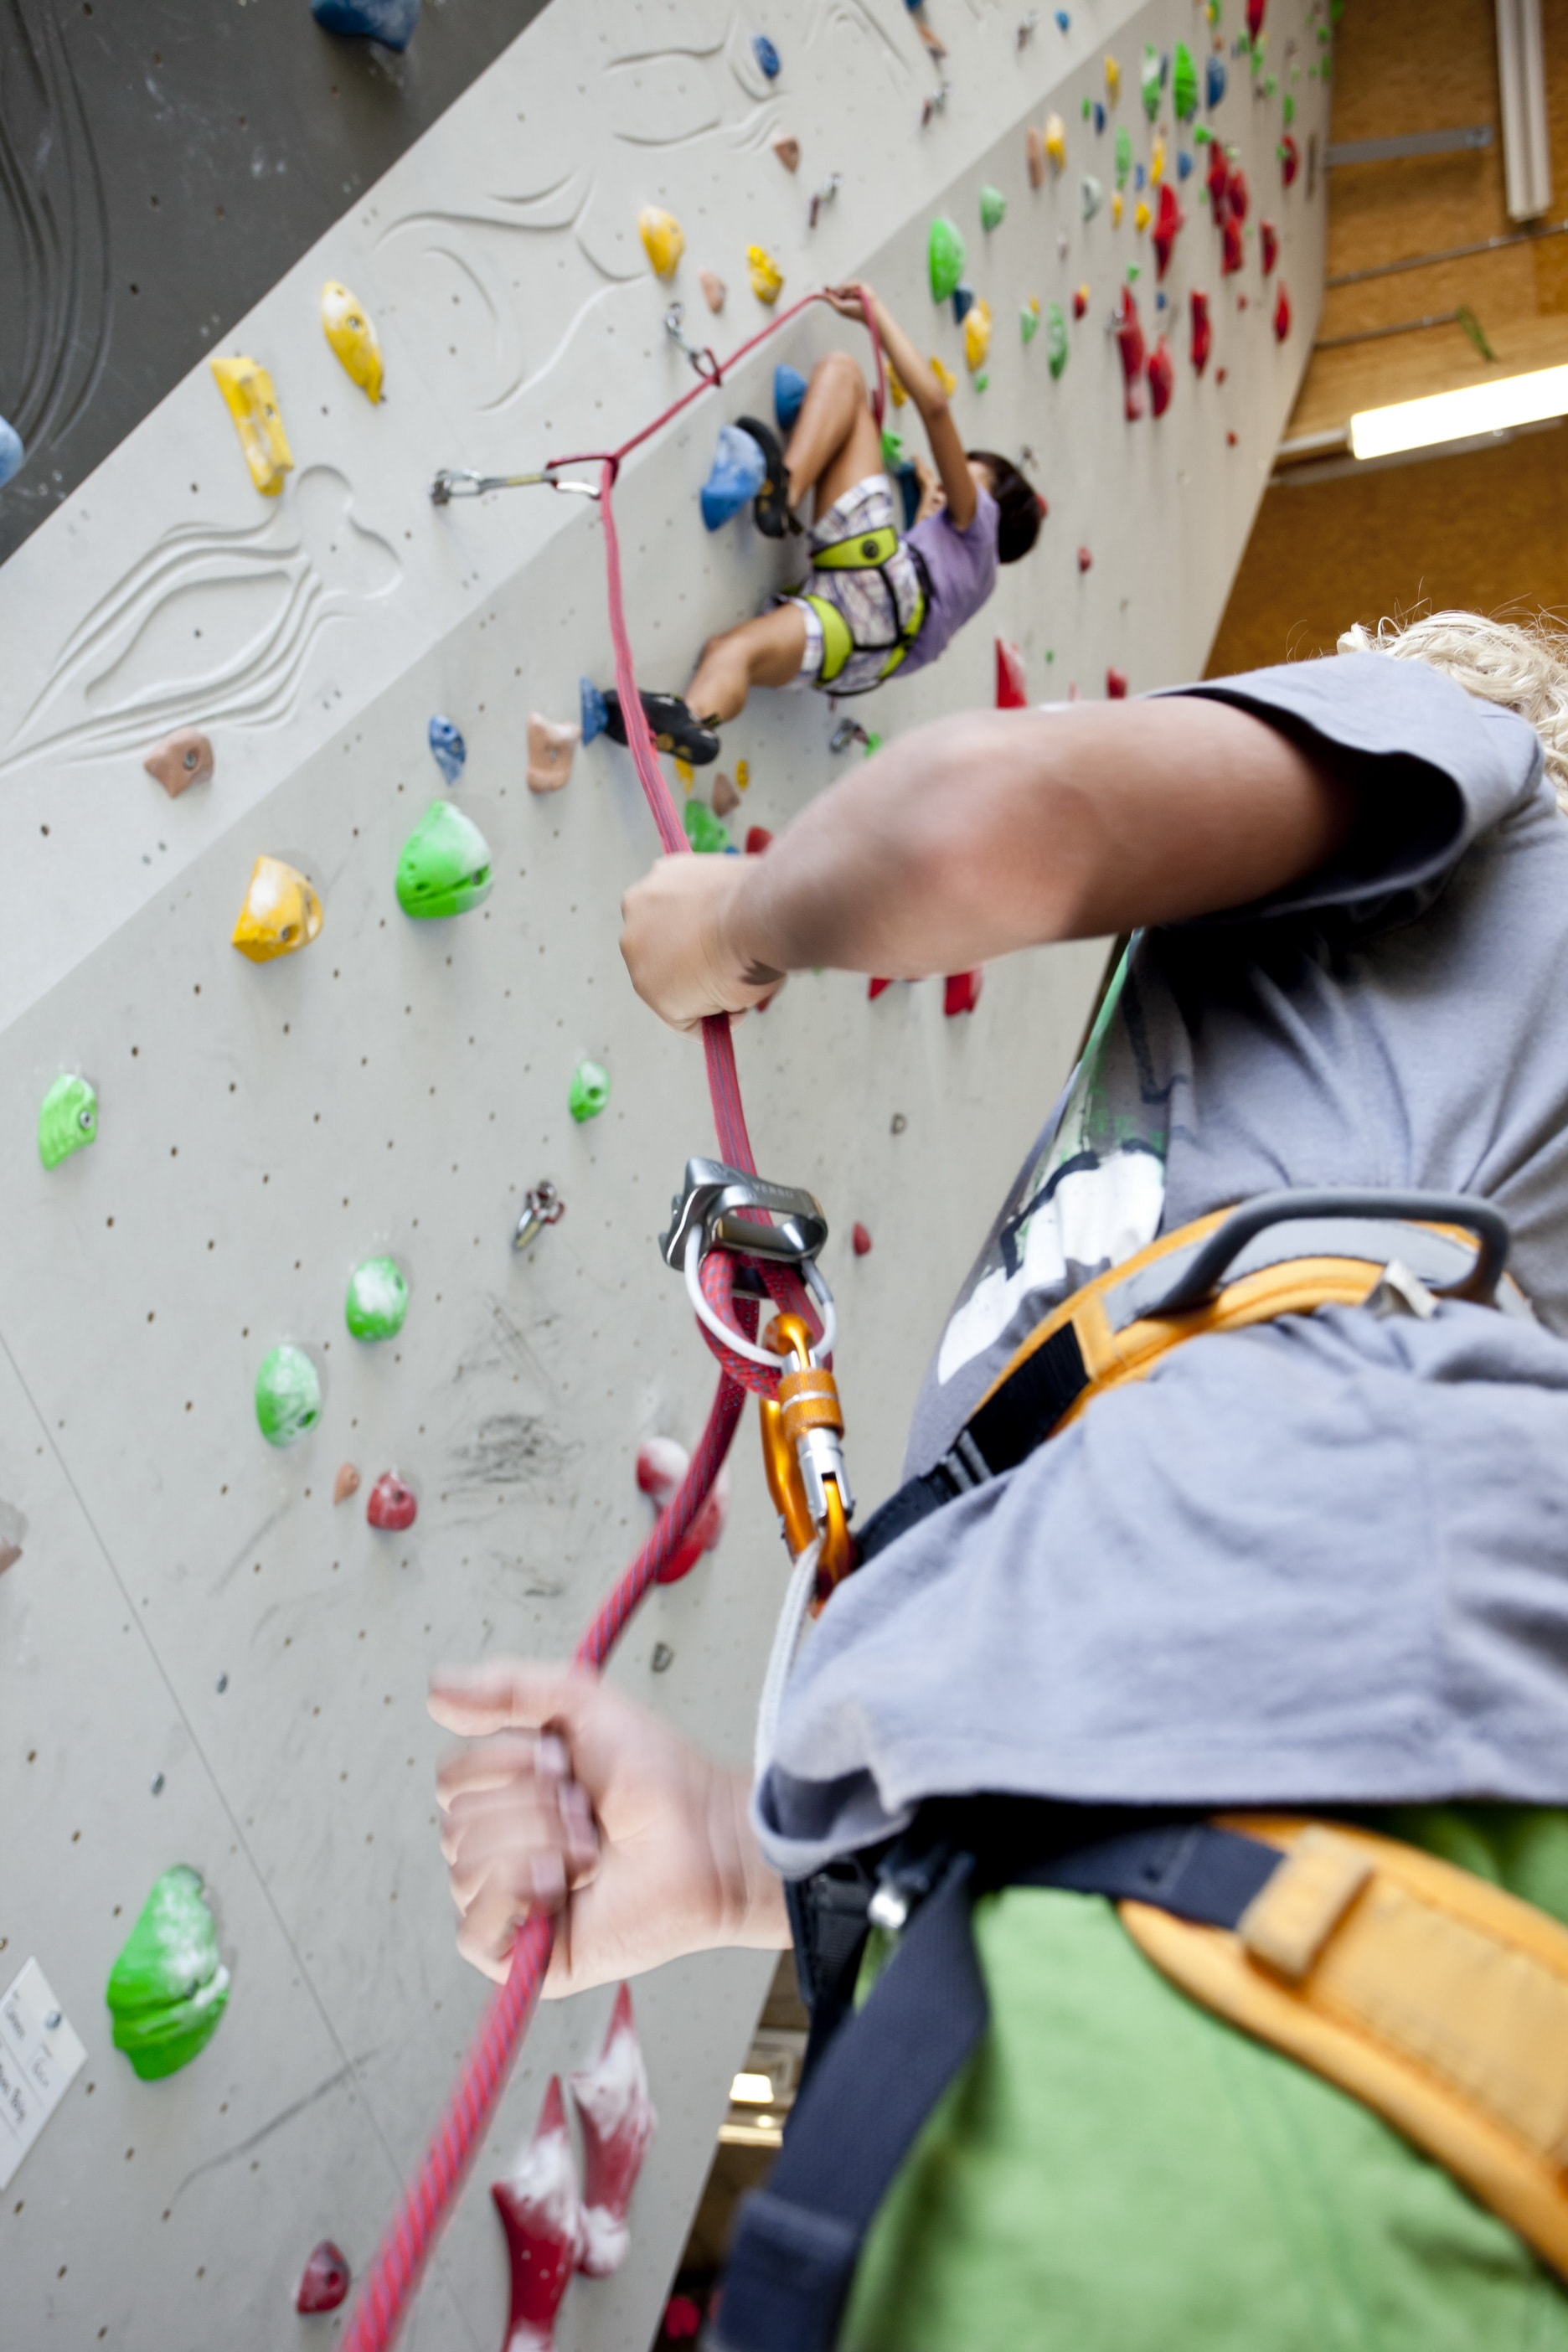 Bei Climbhow gilt: Safety first! (Source: Climbfirst)